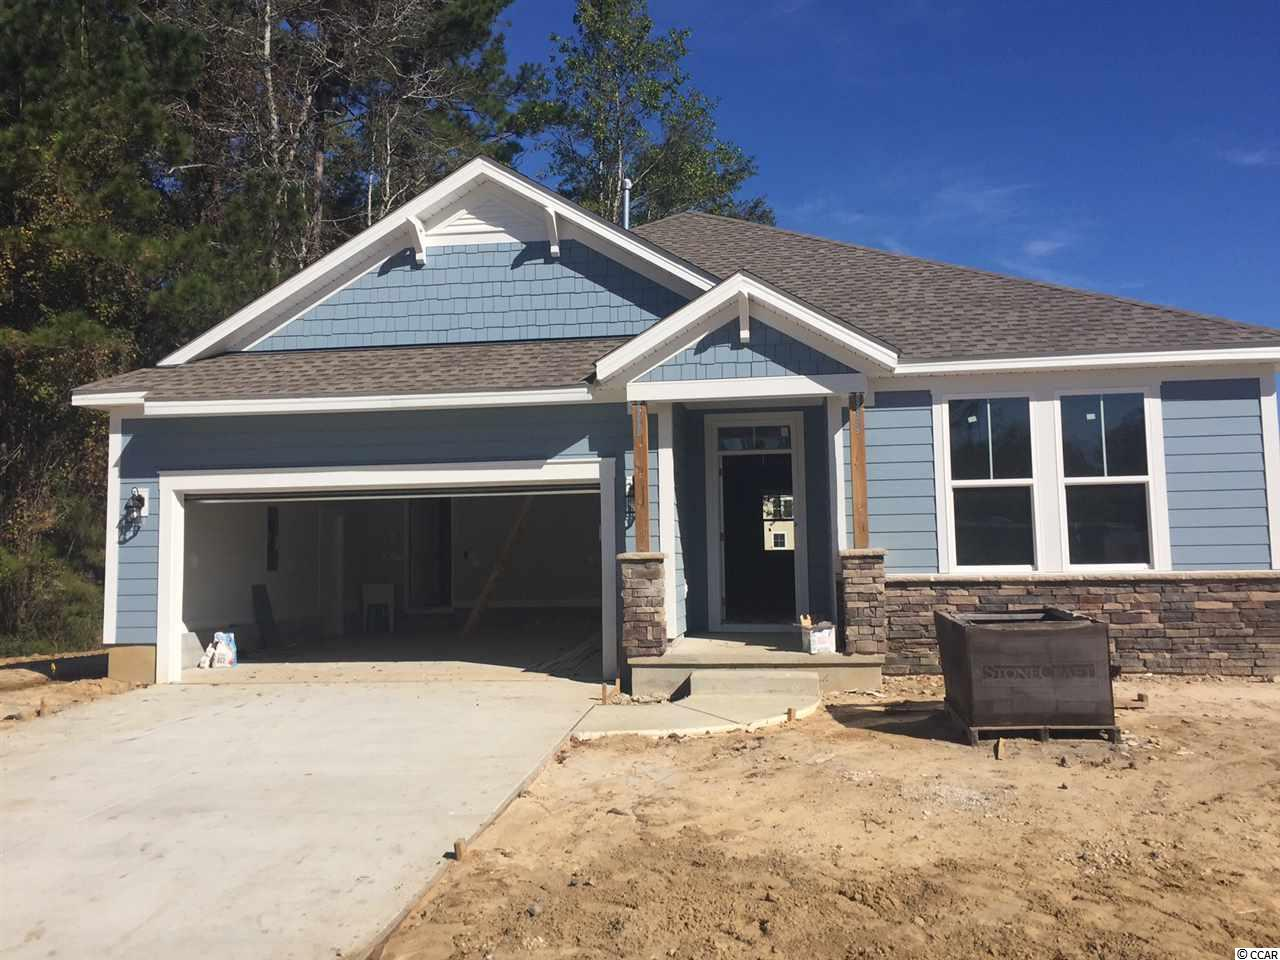 Lot 31 Scottsdale Court, Murrells Inlet, SC 29576